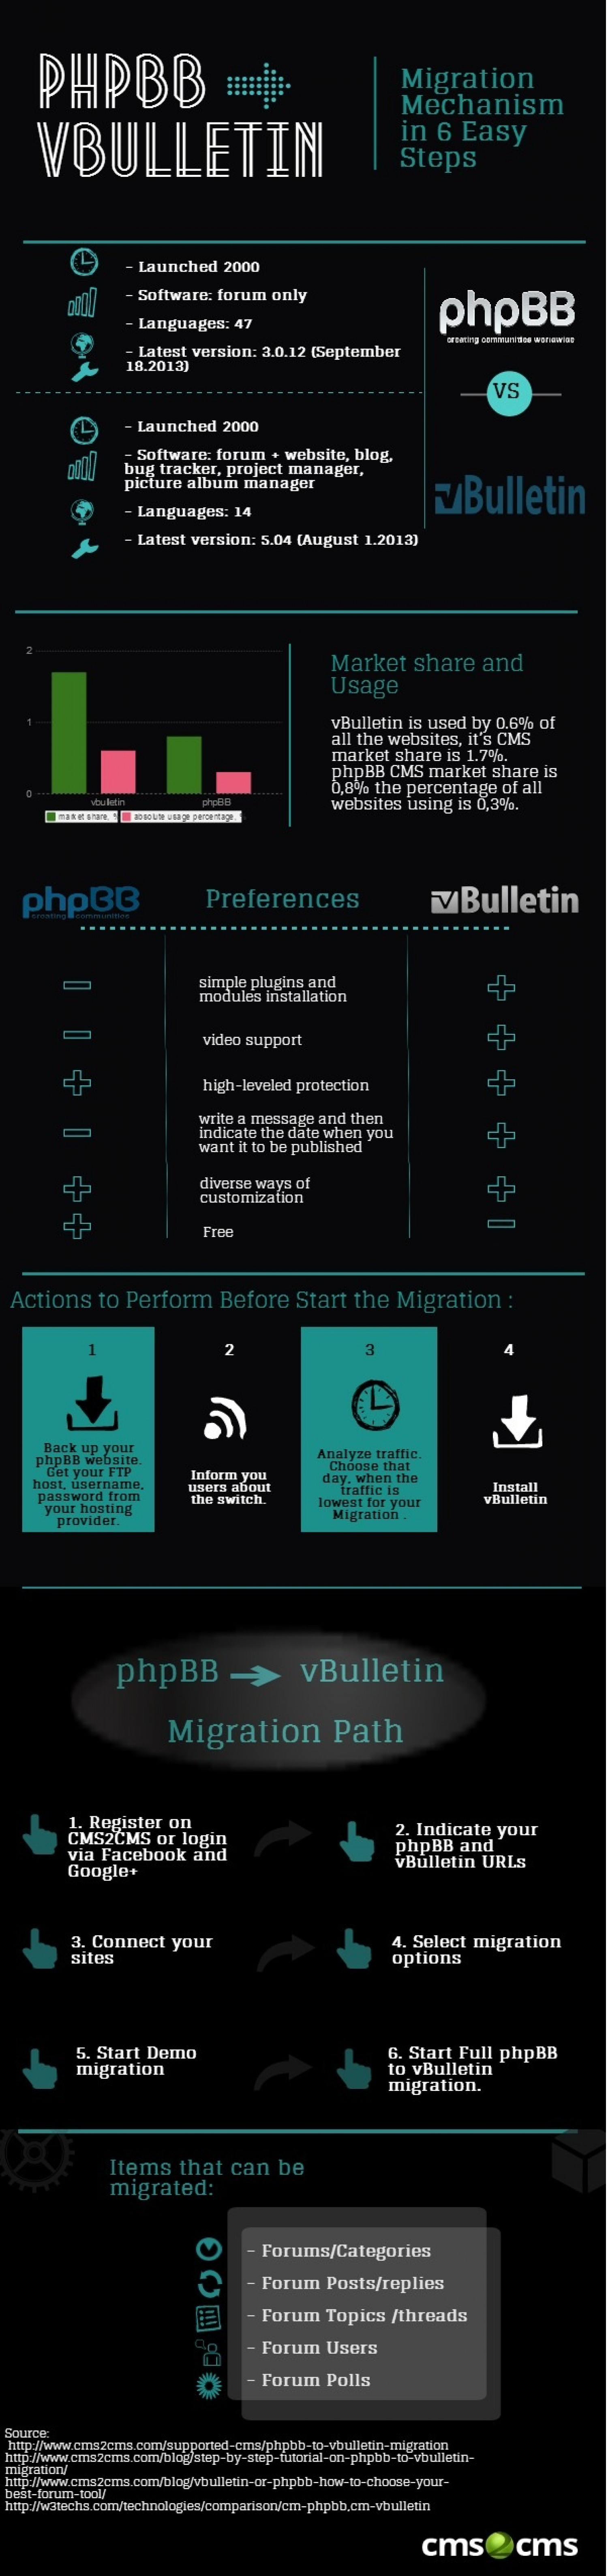 phpBB to vBulletin Migration Mechanism in 6 Easy Steps.    Infographic